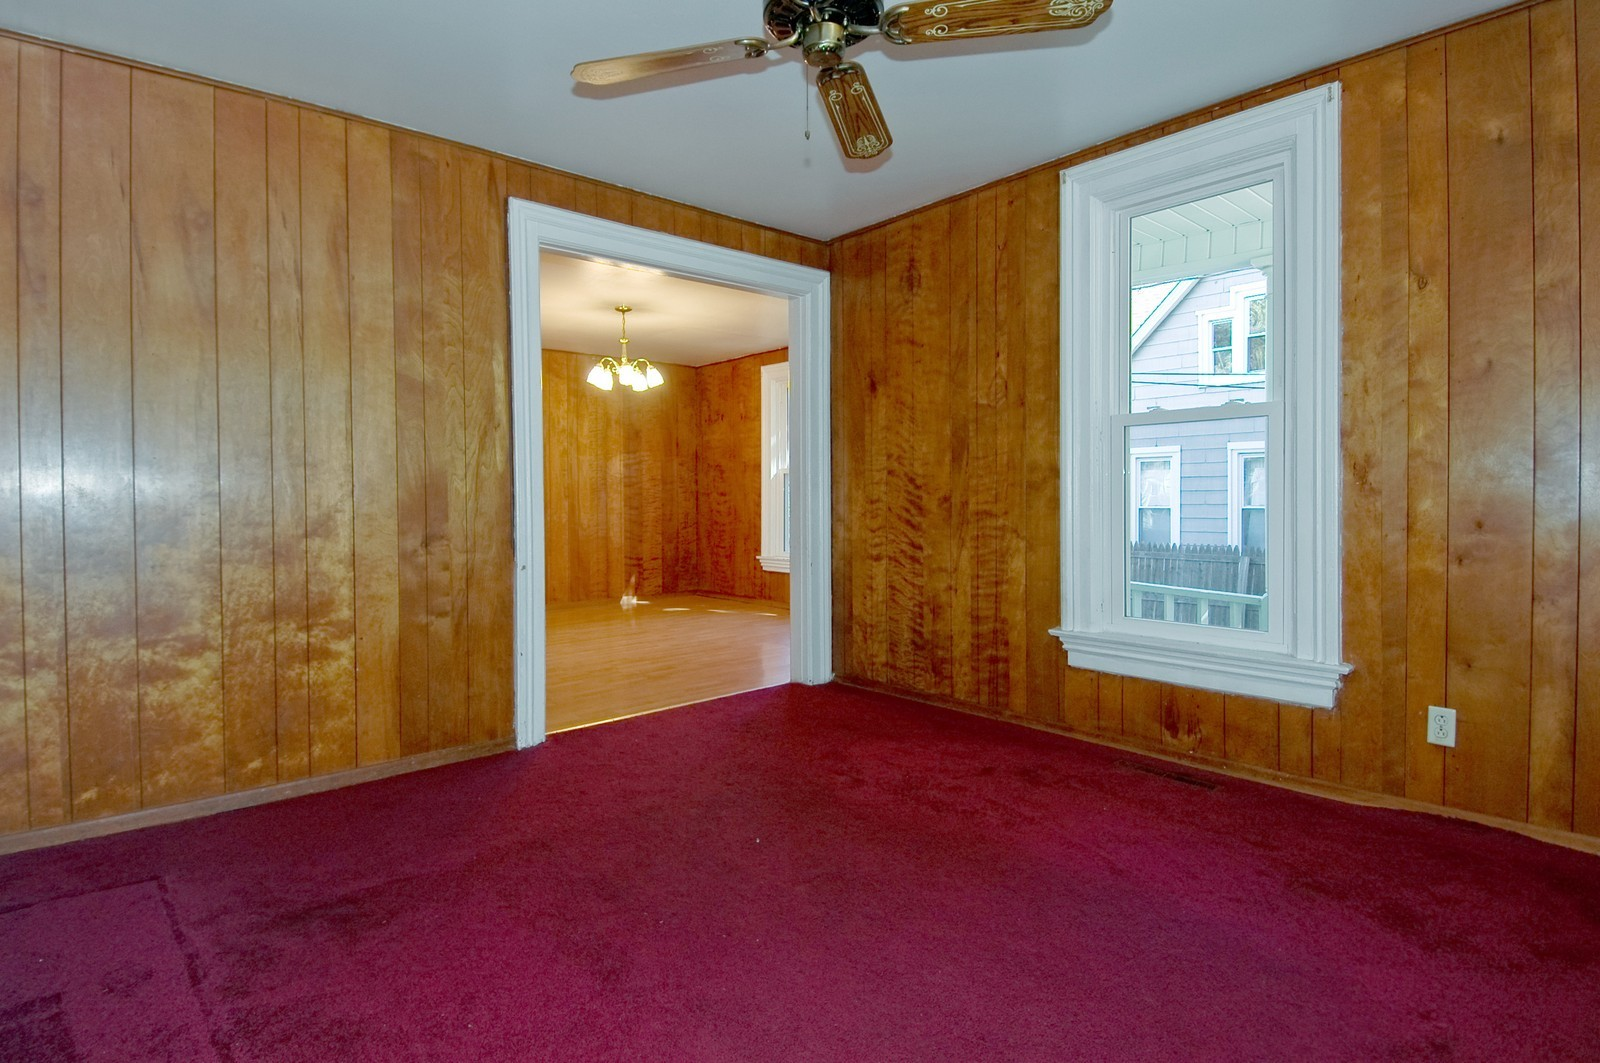 Real Estate Photography - 440 Addison St, Elgin, IL, 60120 - Living Room / Dining Room